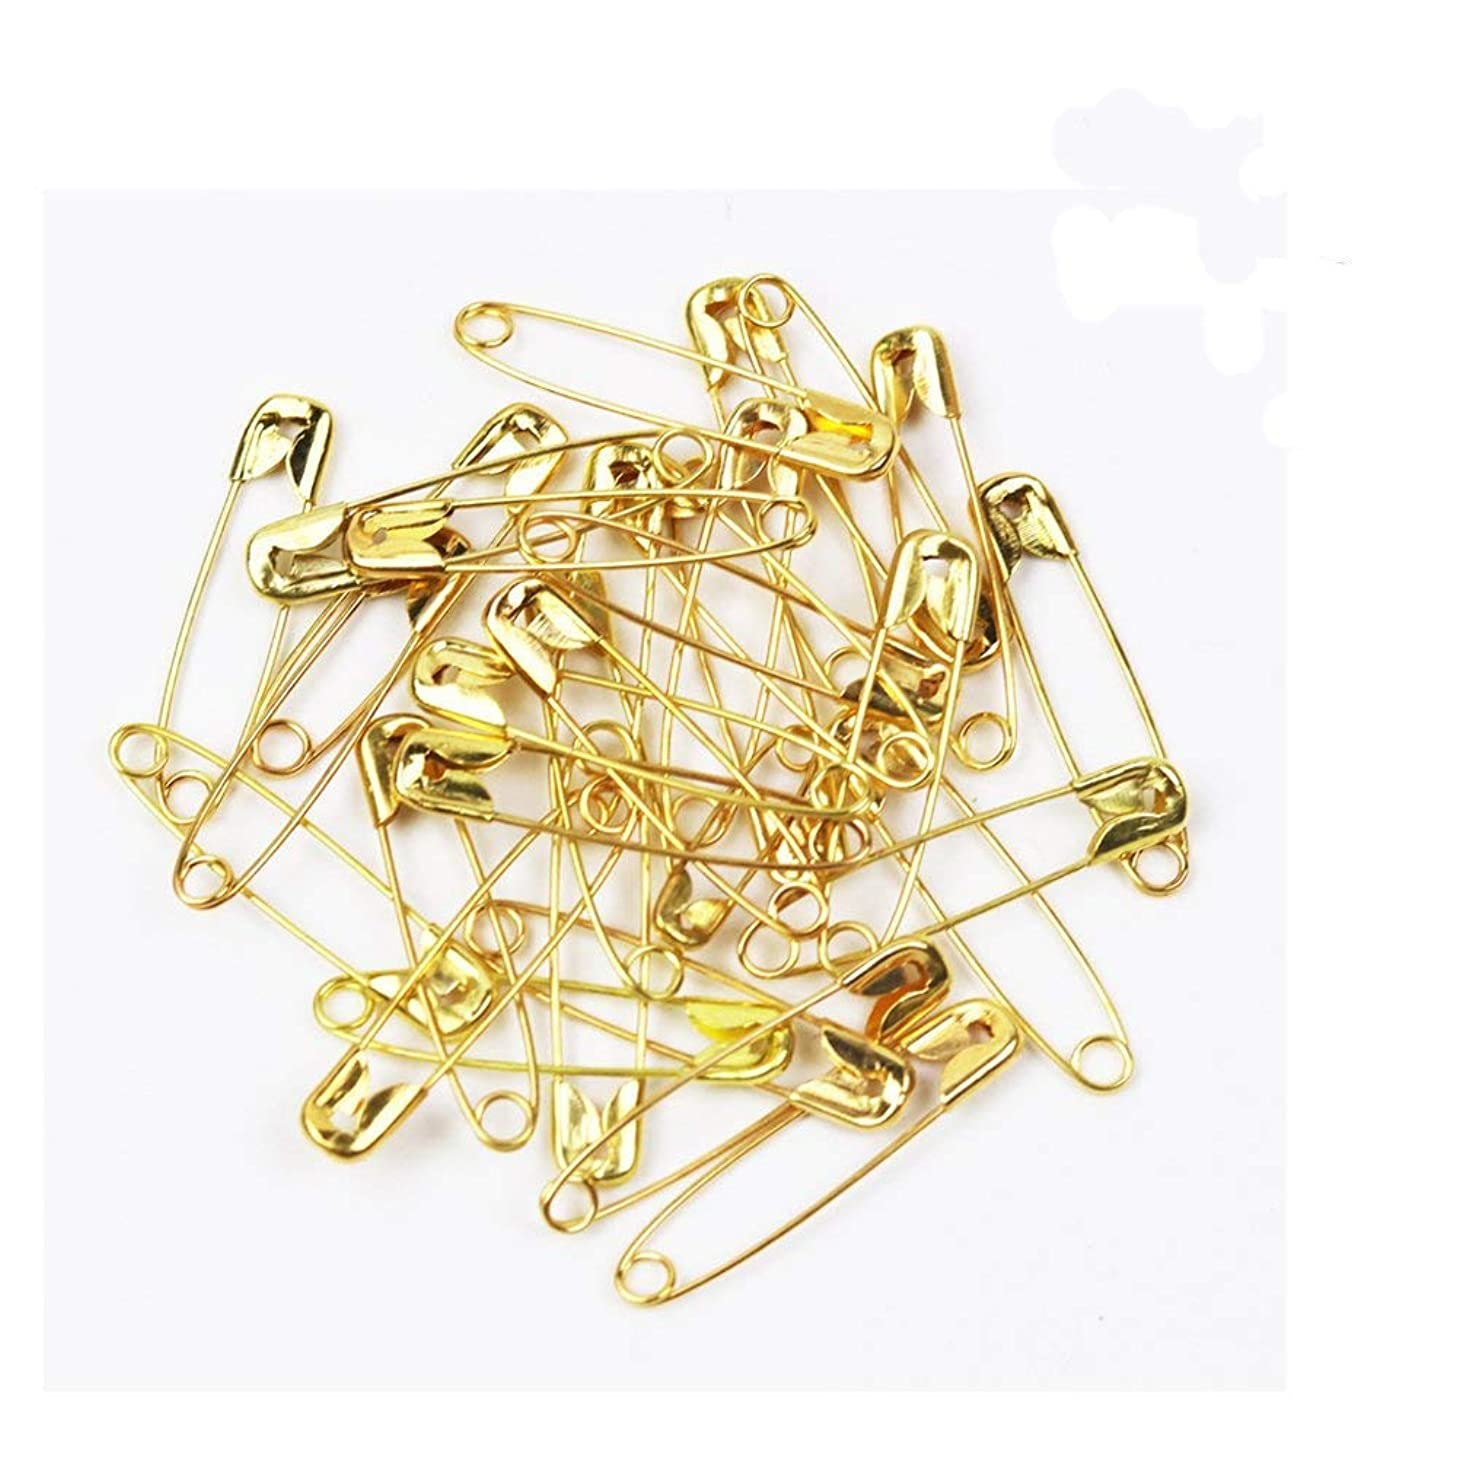 ChooseU 1000 pcs Small Nickel Plated Safety pins 0.87'' Length (22mm) wholesales for Garment Hang tag DIY Safety Pins Brooch Jewelry Accessory Colors Jewelry Accessories (Gold)